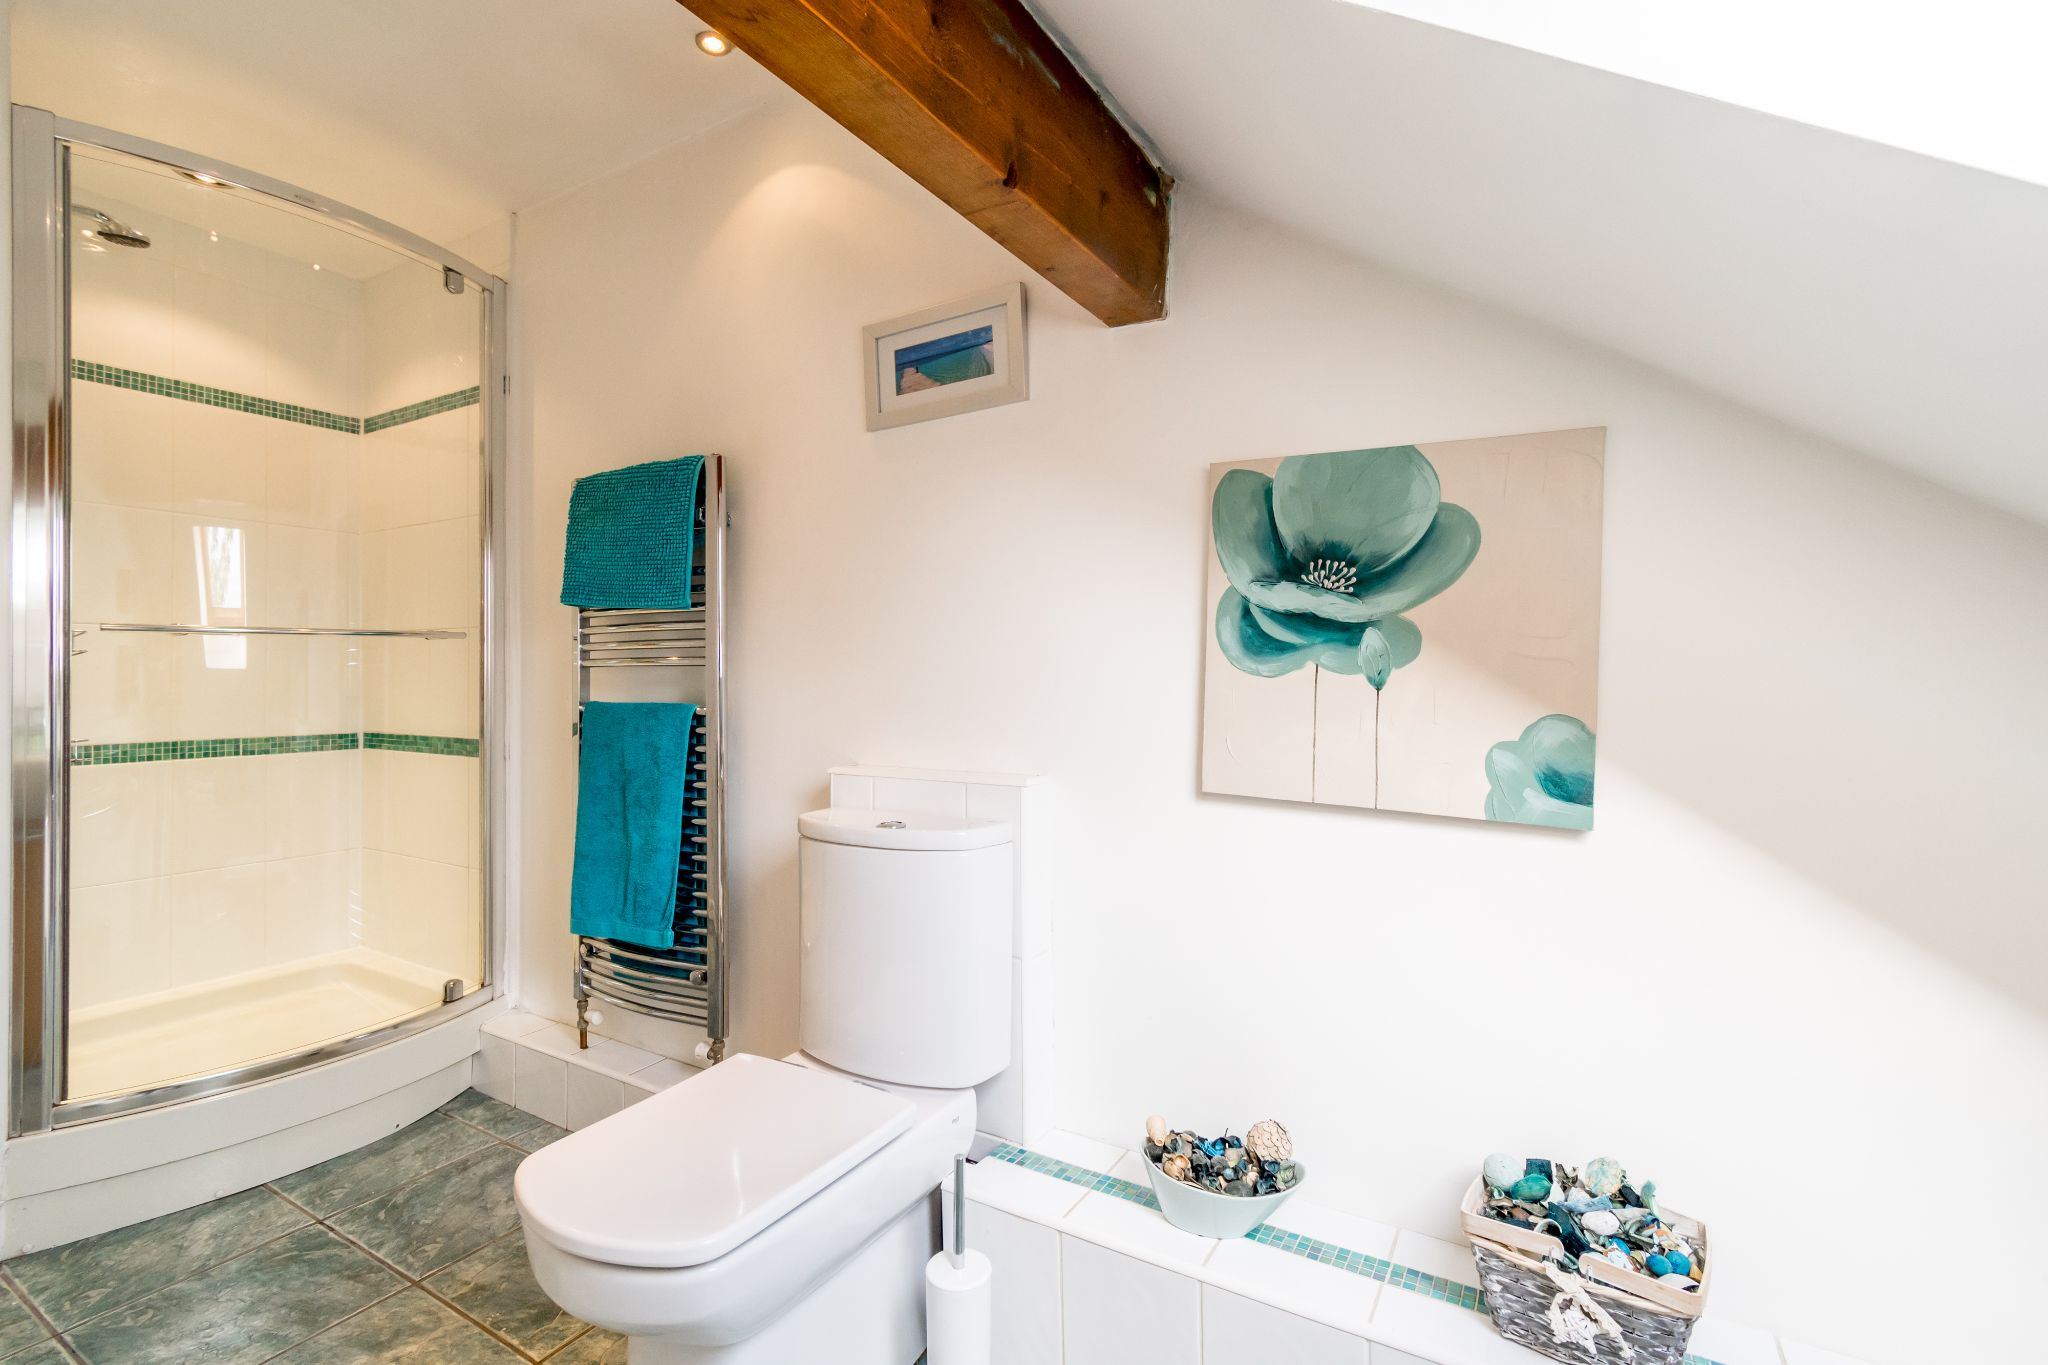 5 bedroom detached house For Sale in Brighouse - Shower room